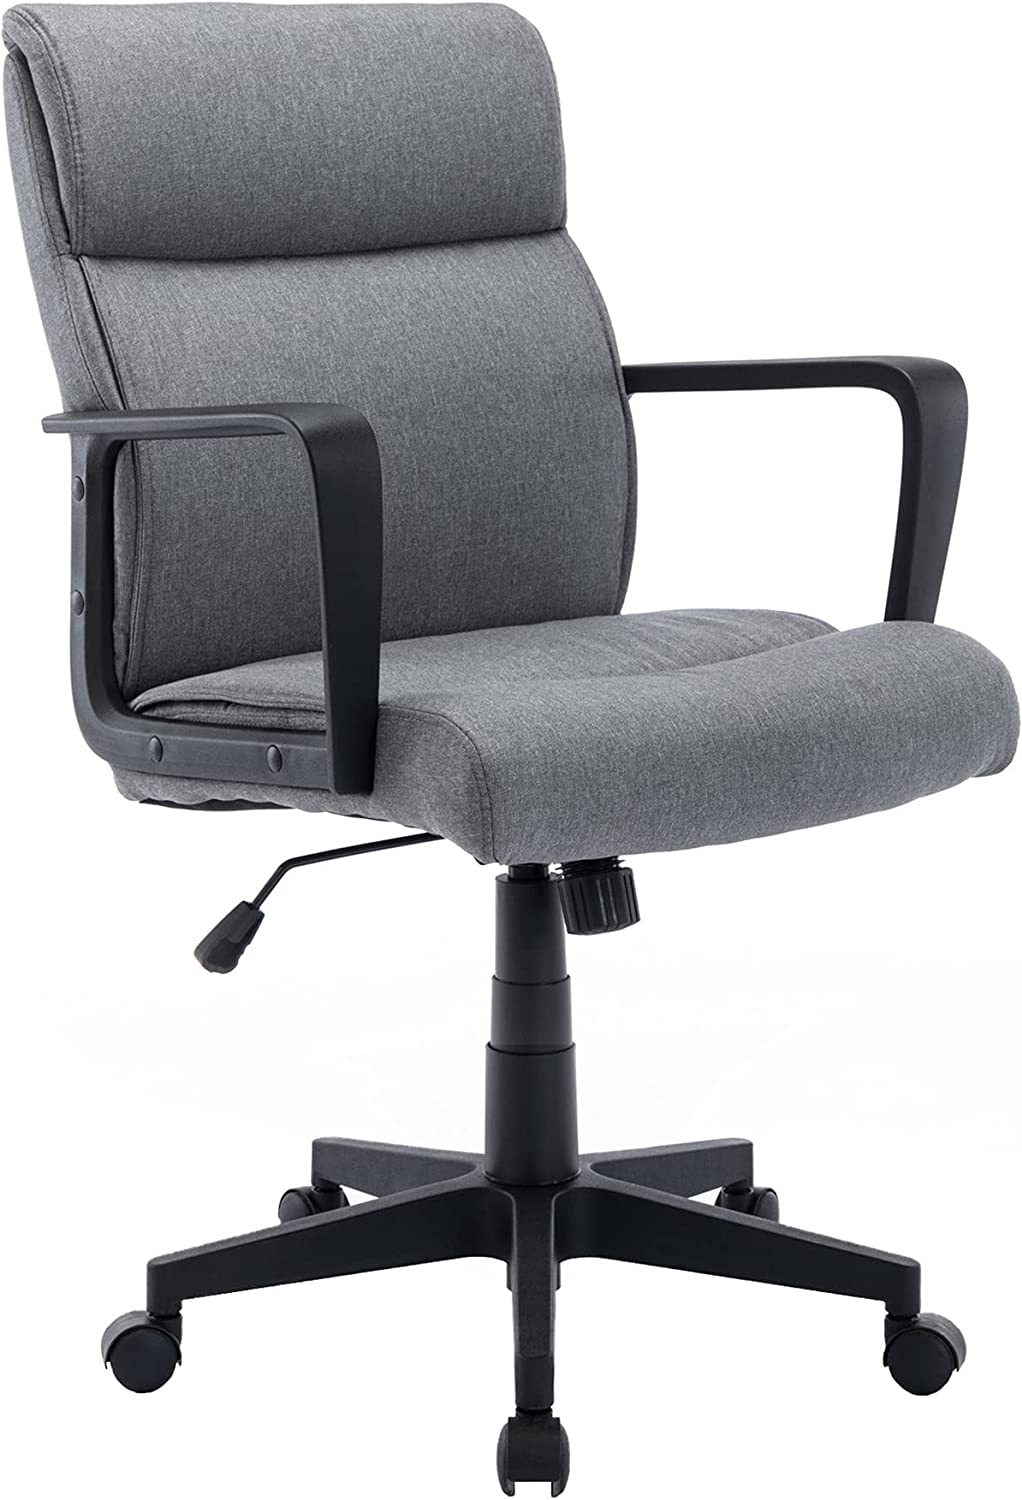 Recaceik Home Office Chair Mid Computer Back Ergonomic Cha Desk 67% OFF lowest price of fixed price